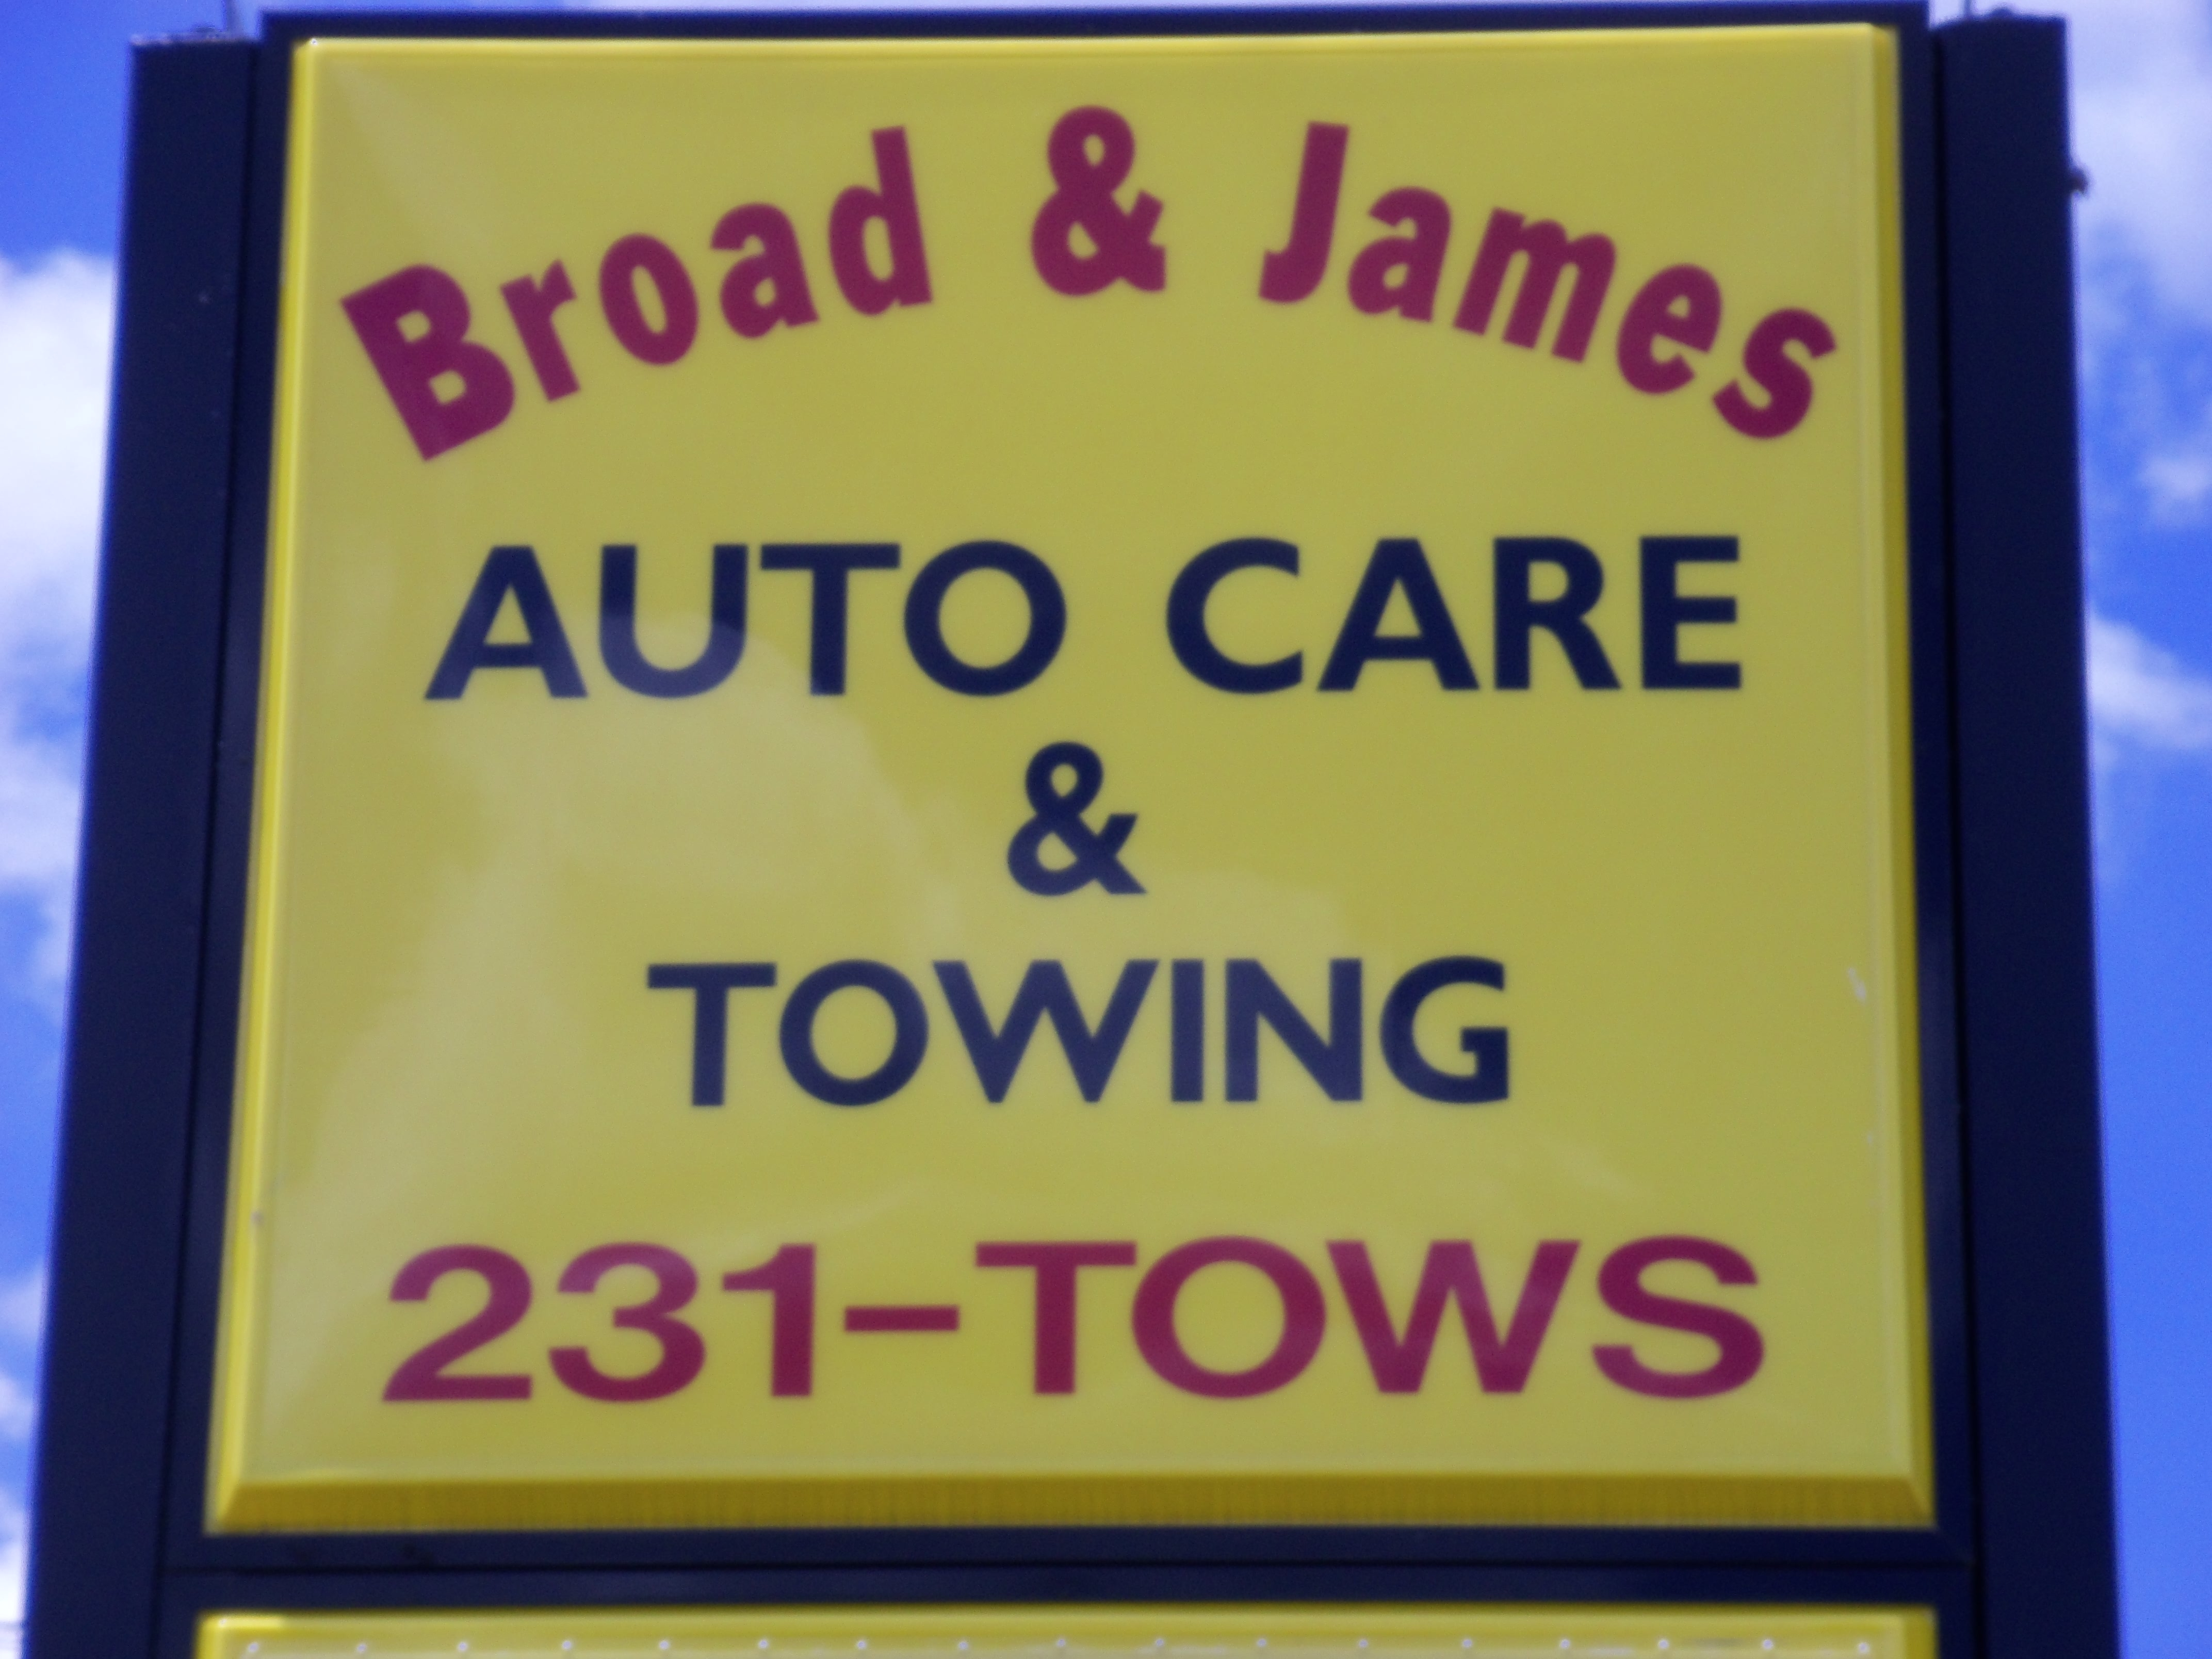 Broad & James Towing